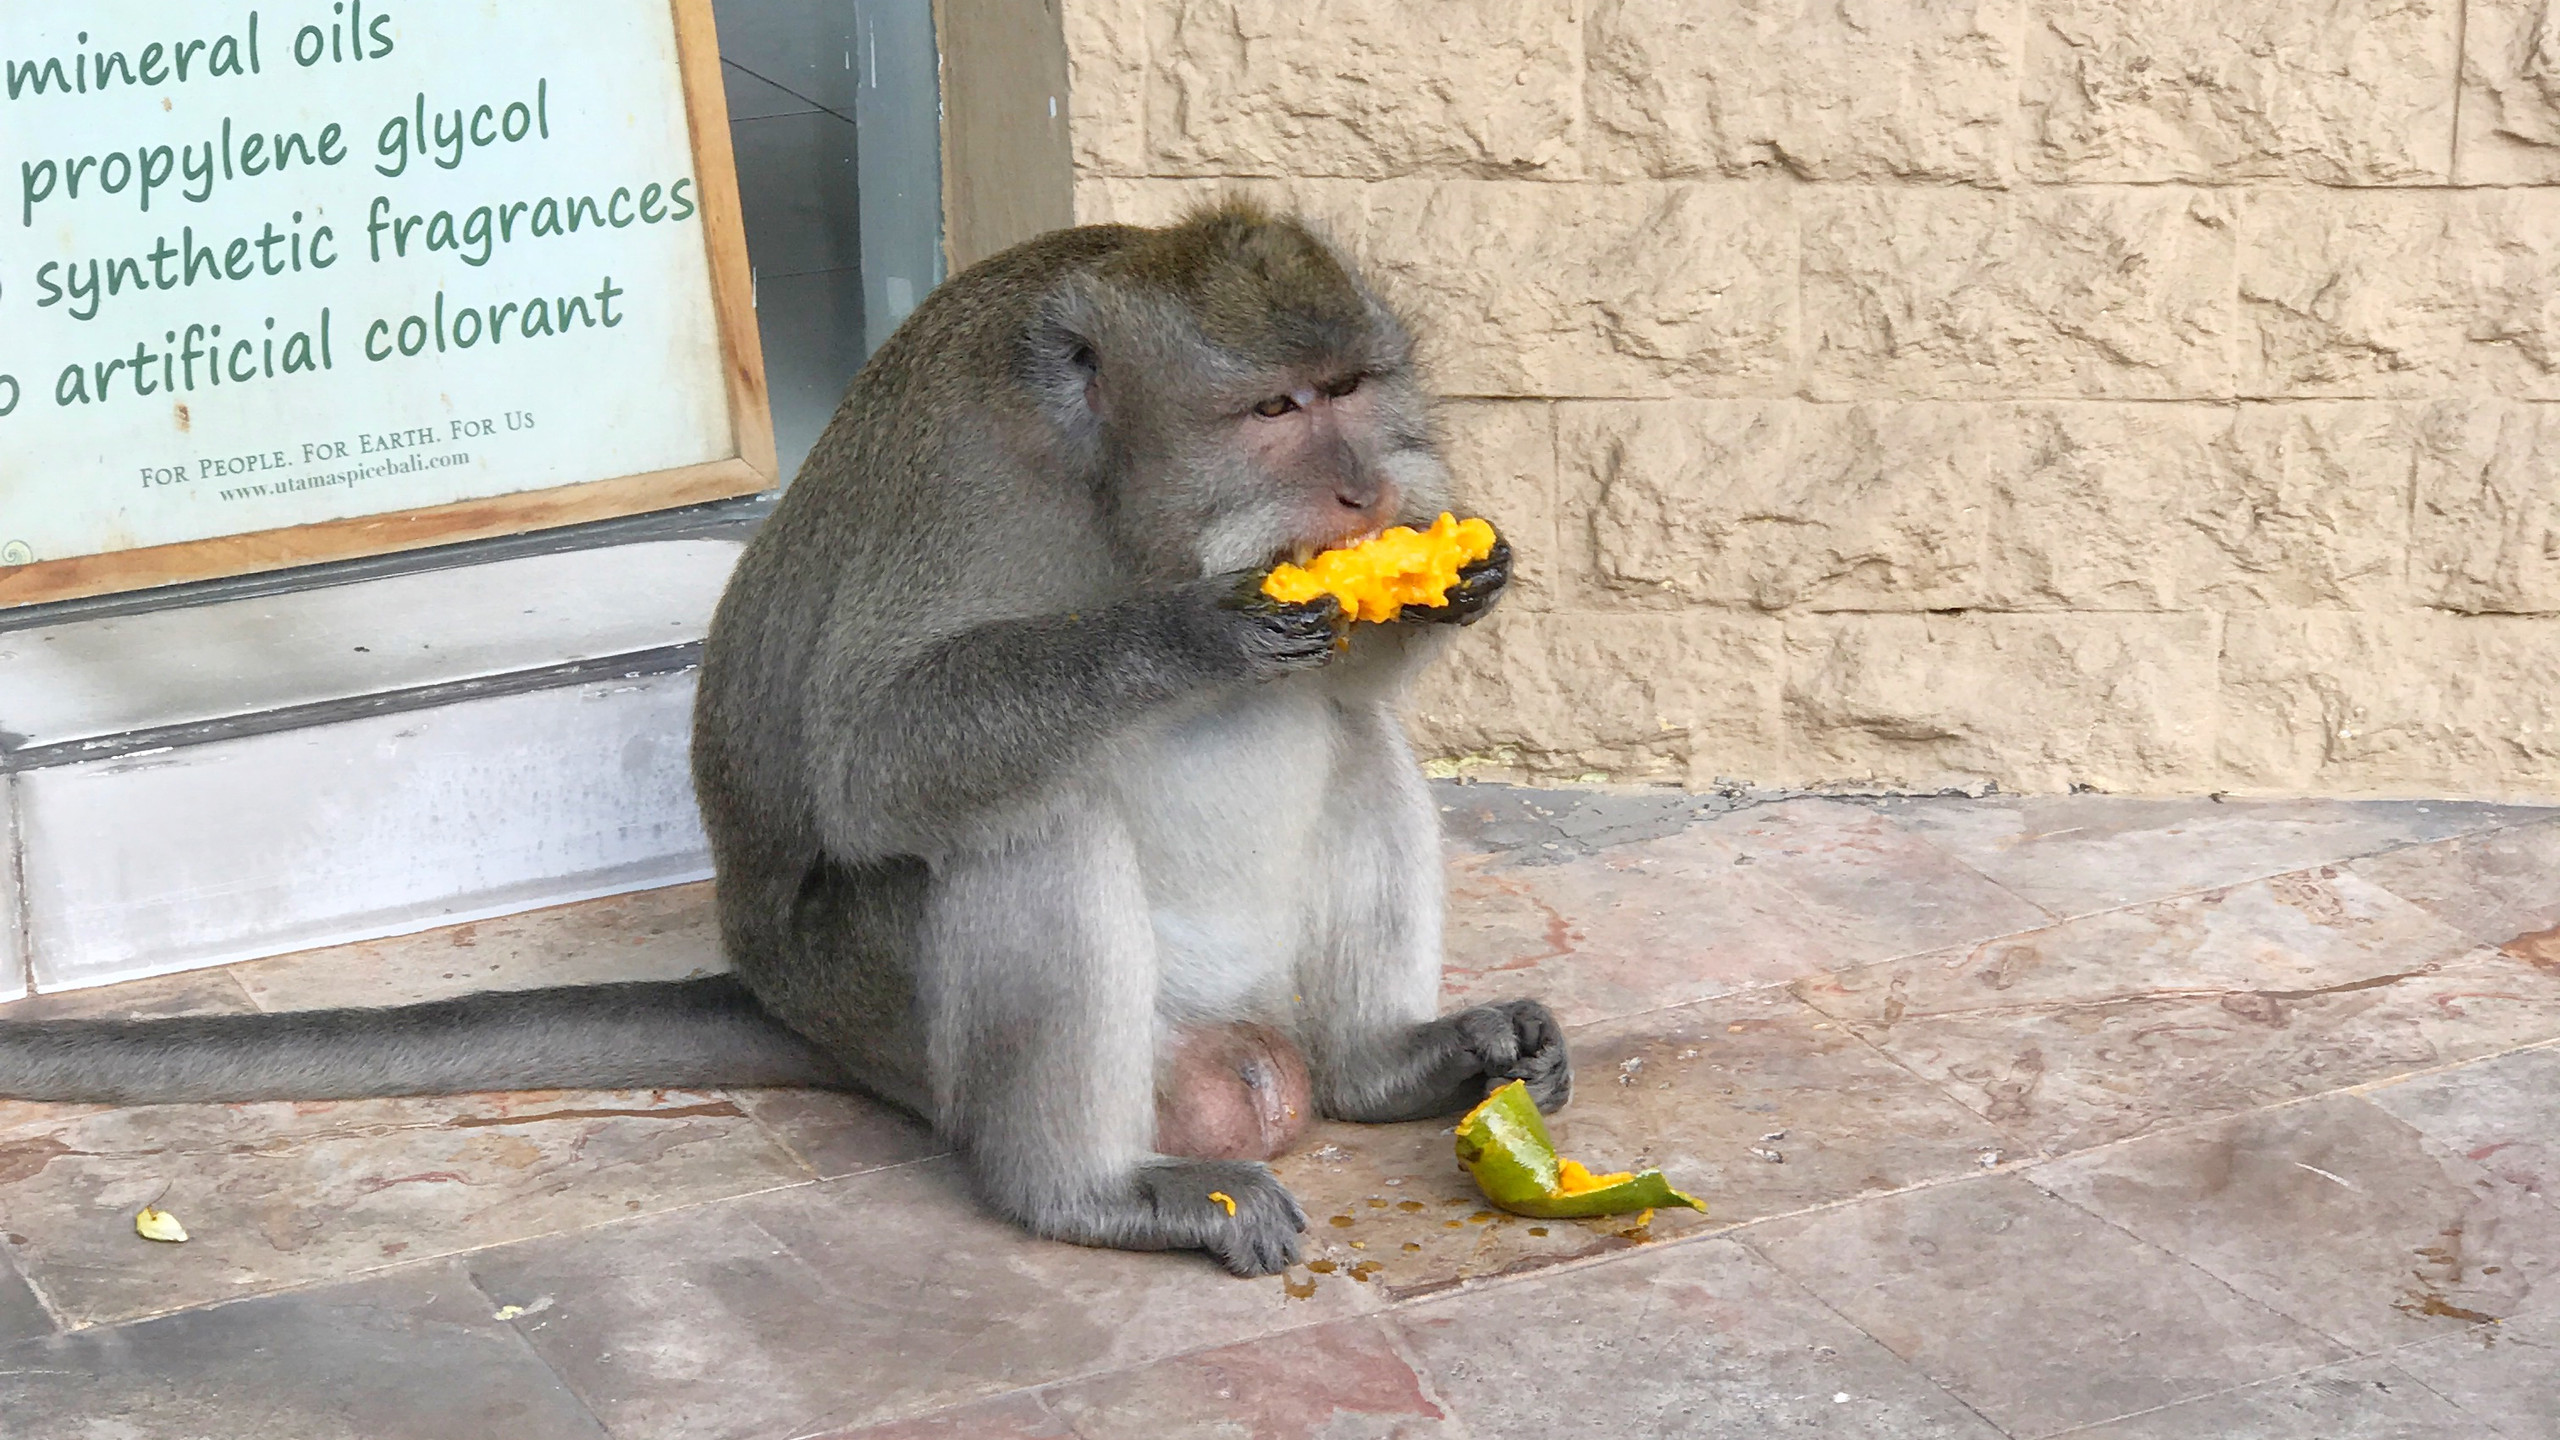 & apparently they like Mangoes?